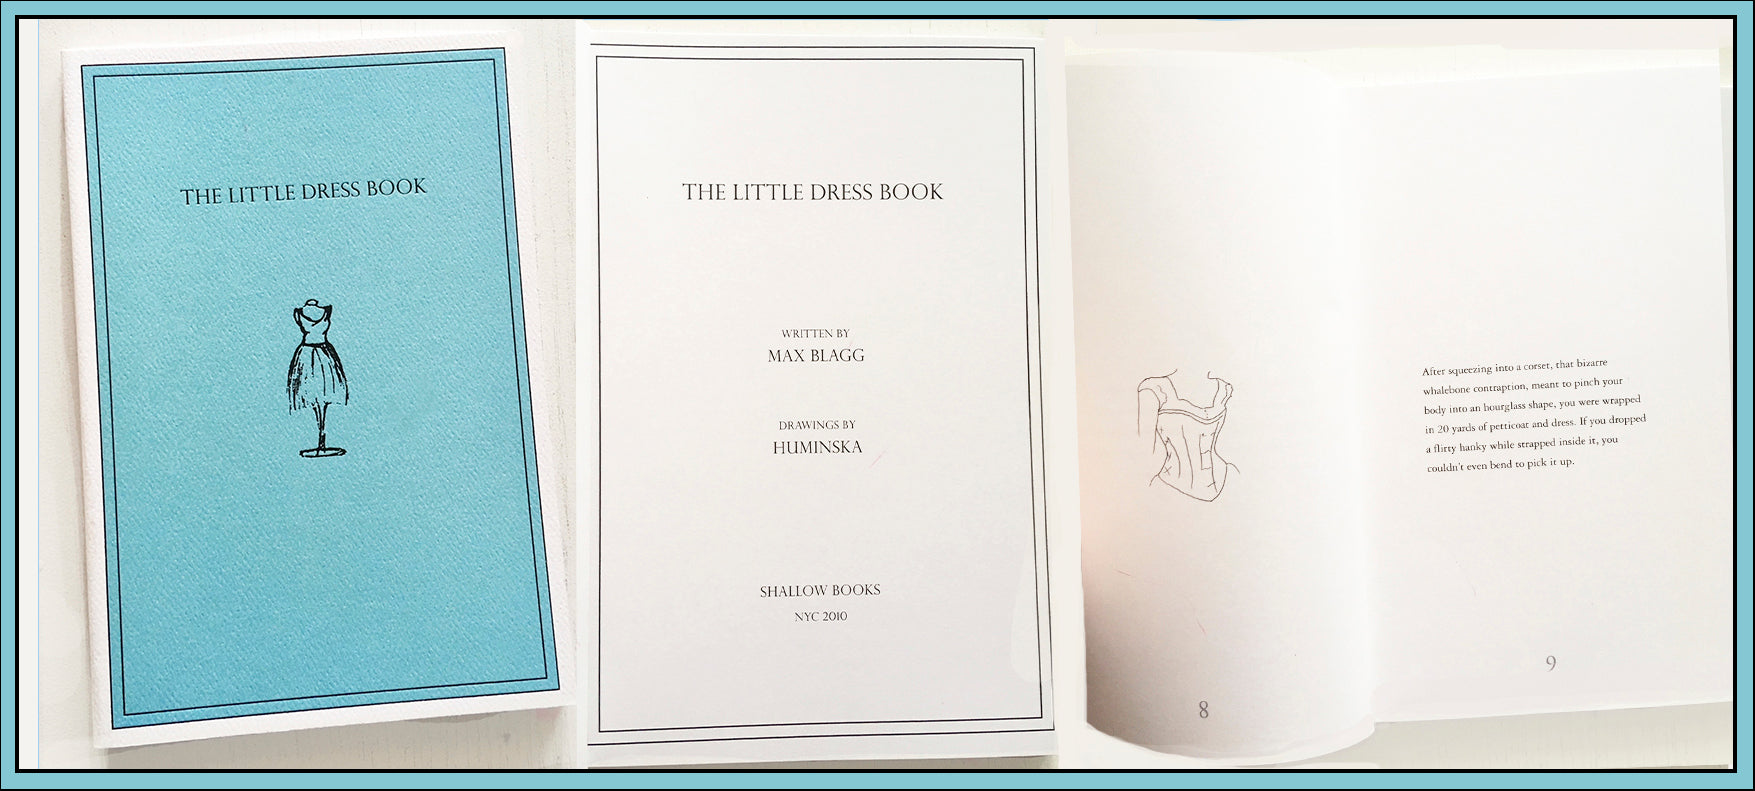 The Little Dress Book written by Max Blagg with drawings by HUMINSKA $20.00